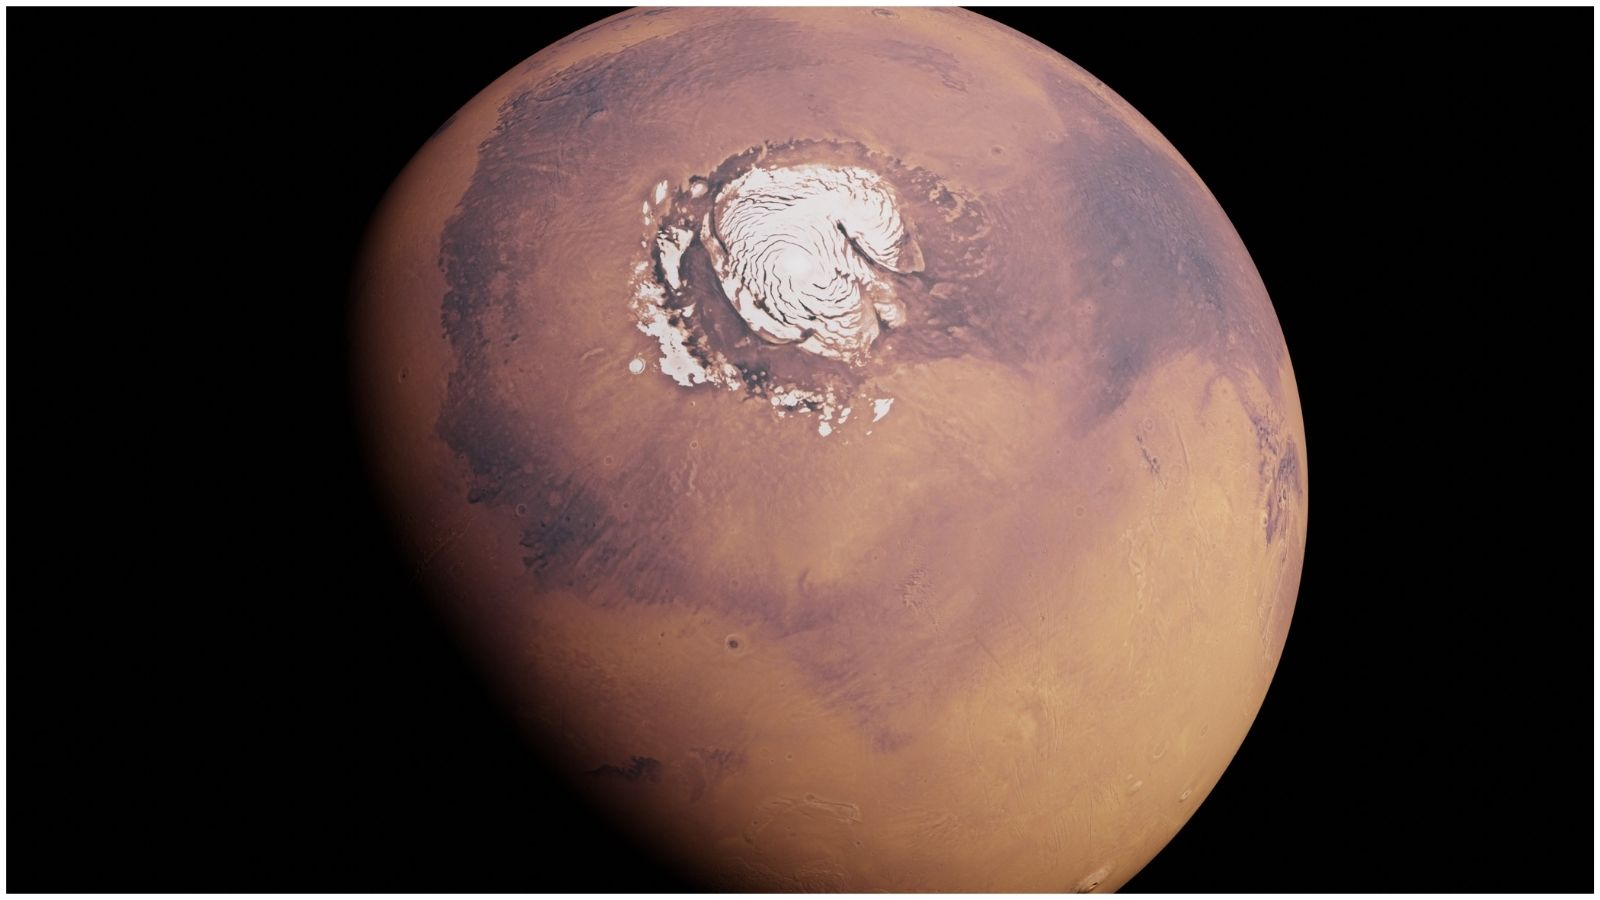 Mars Helicopter captures image